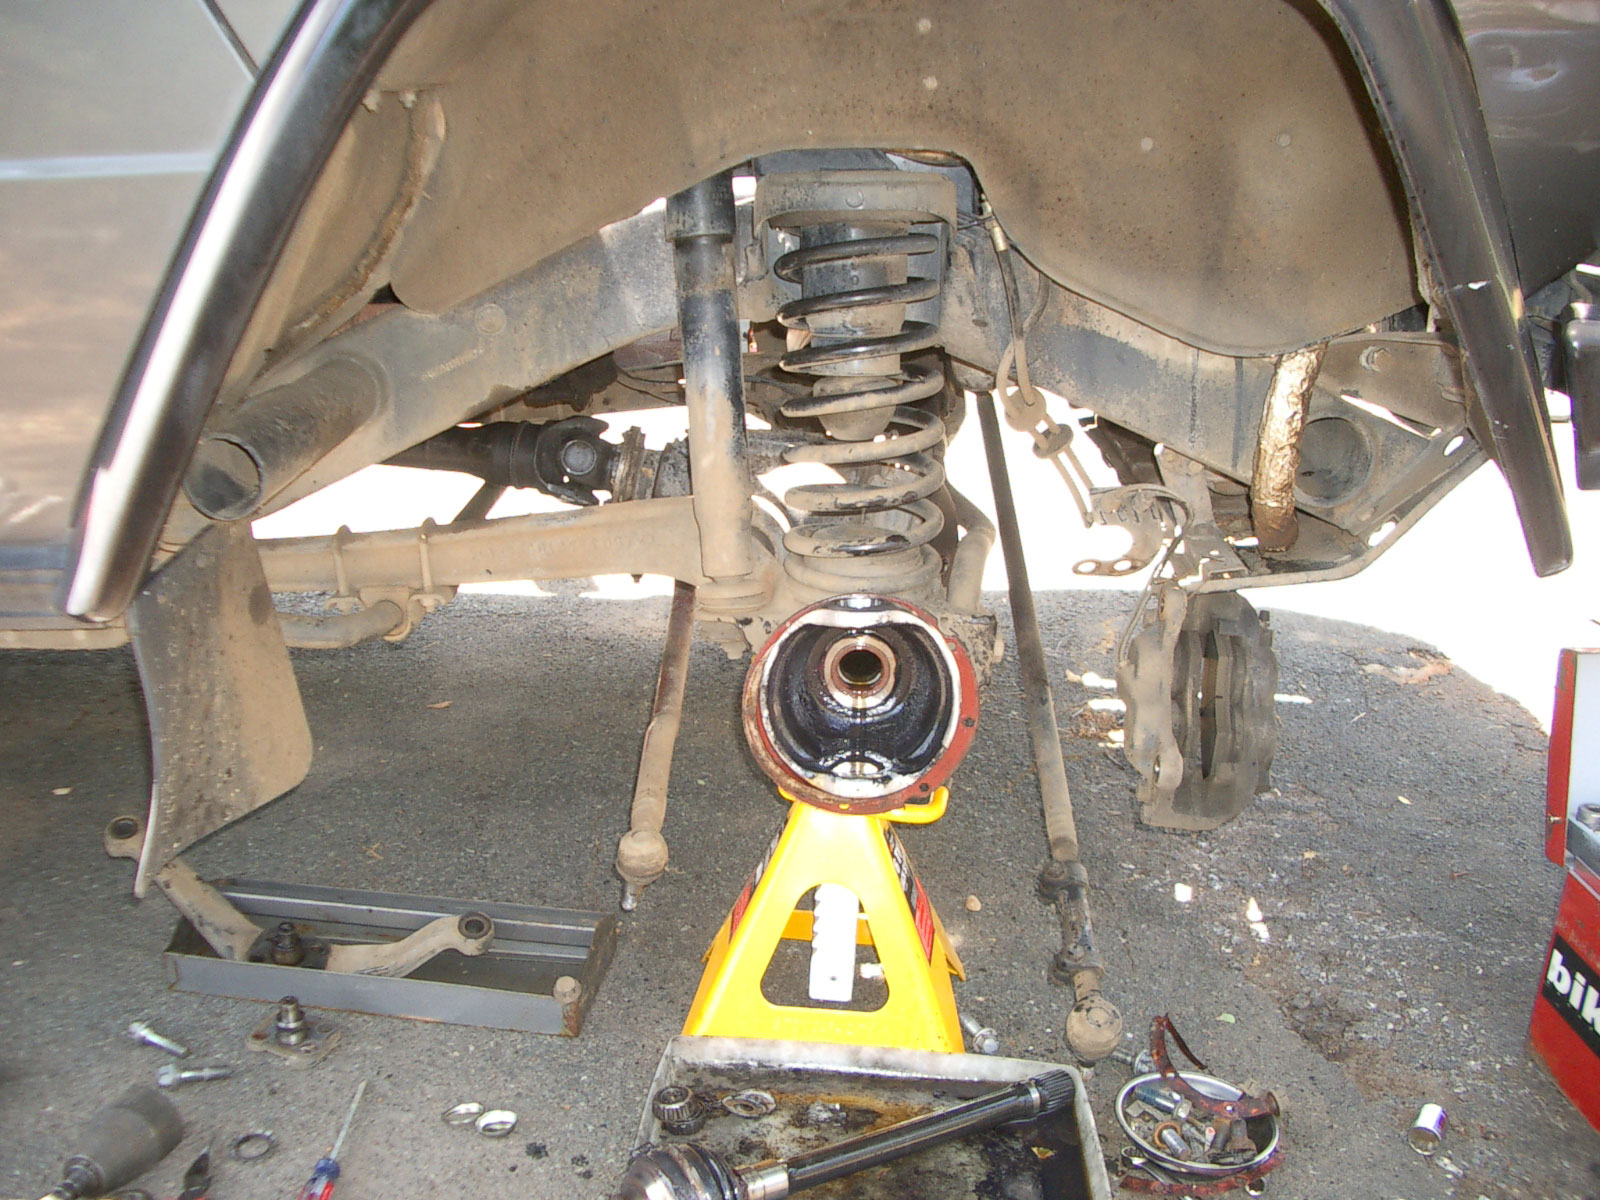 Side glance at an axle rebuild in progress.